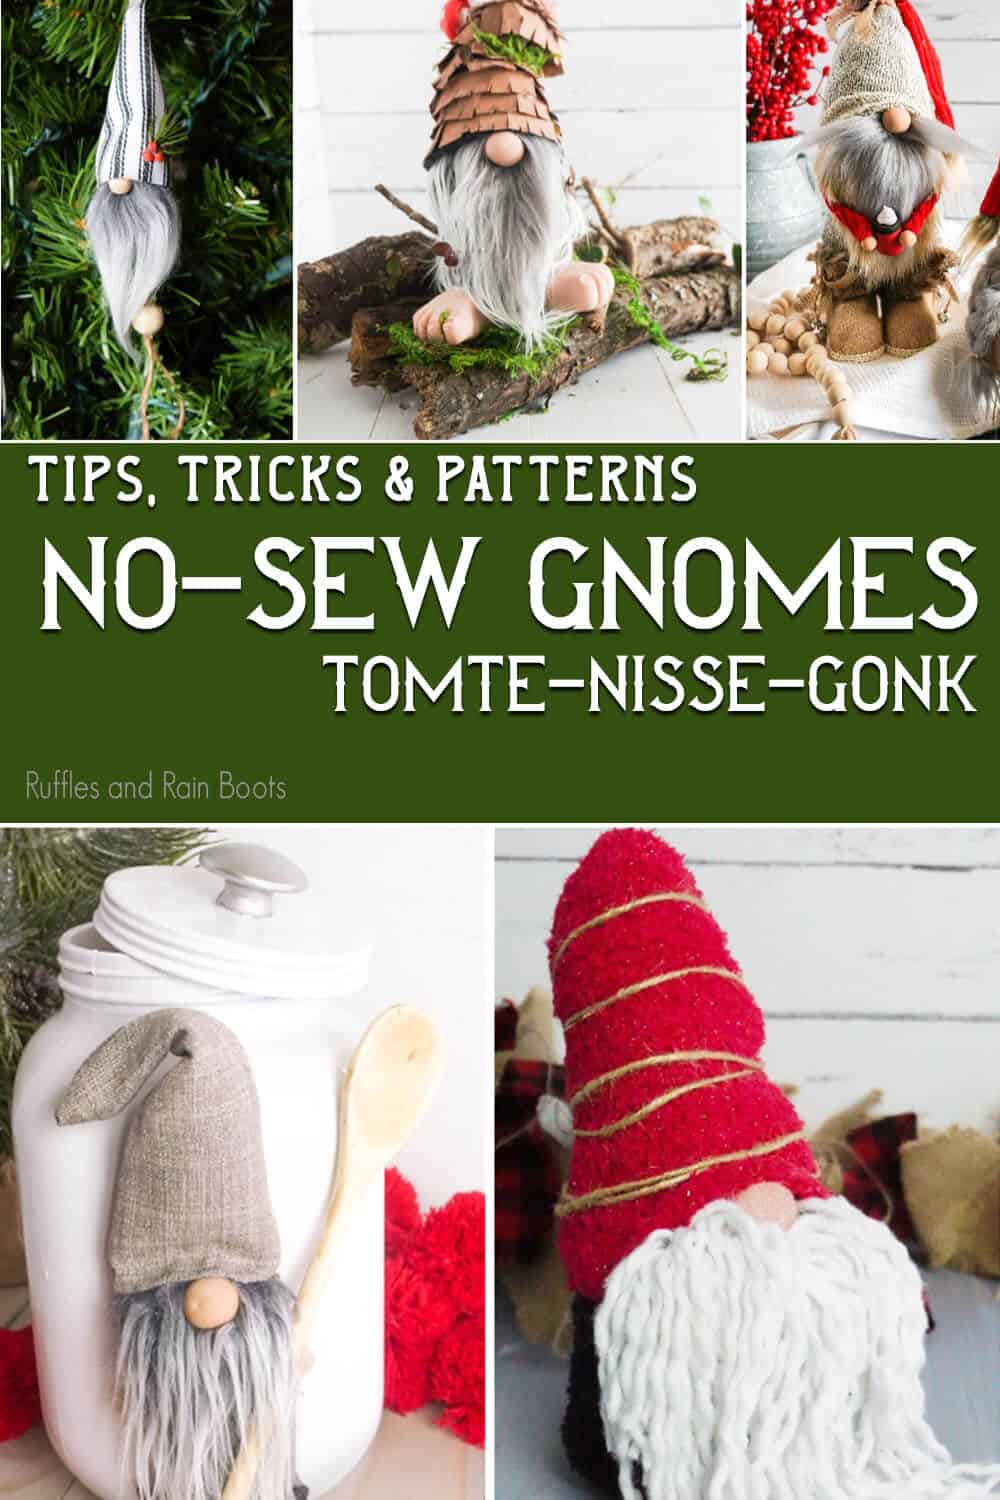 photo collage of diy no-sew gnome patterns with text which reads tips tricks & patterns no-sew gnomes tomte nisse gonk